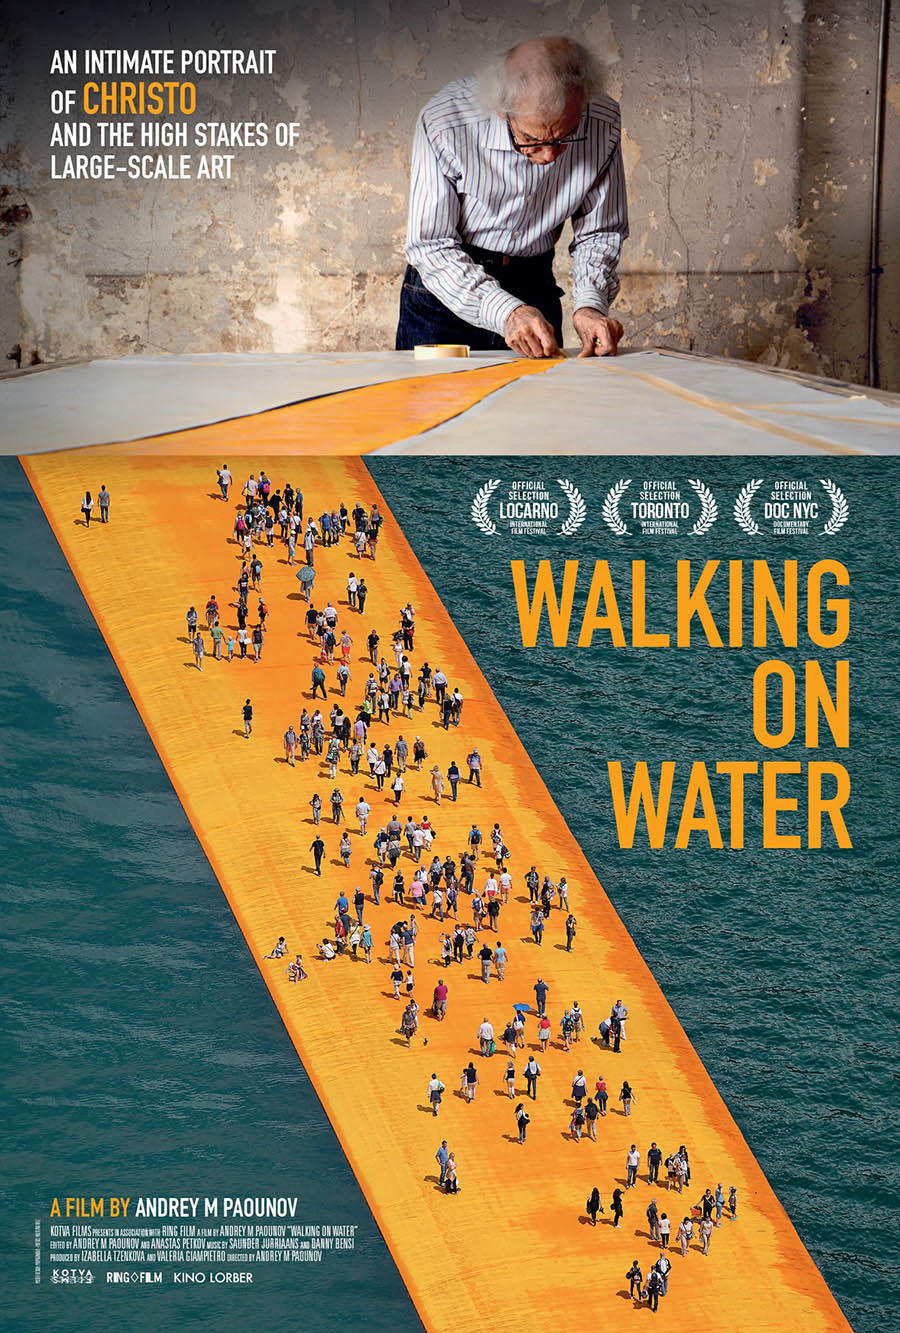 Walking on Water (2019) poster art